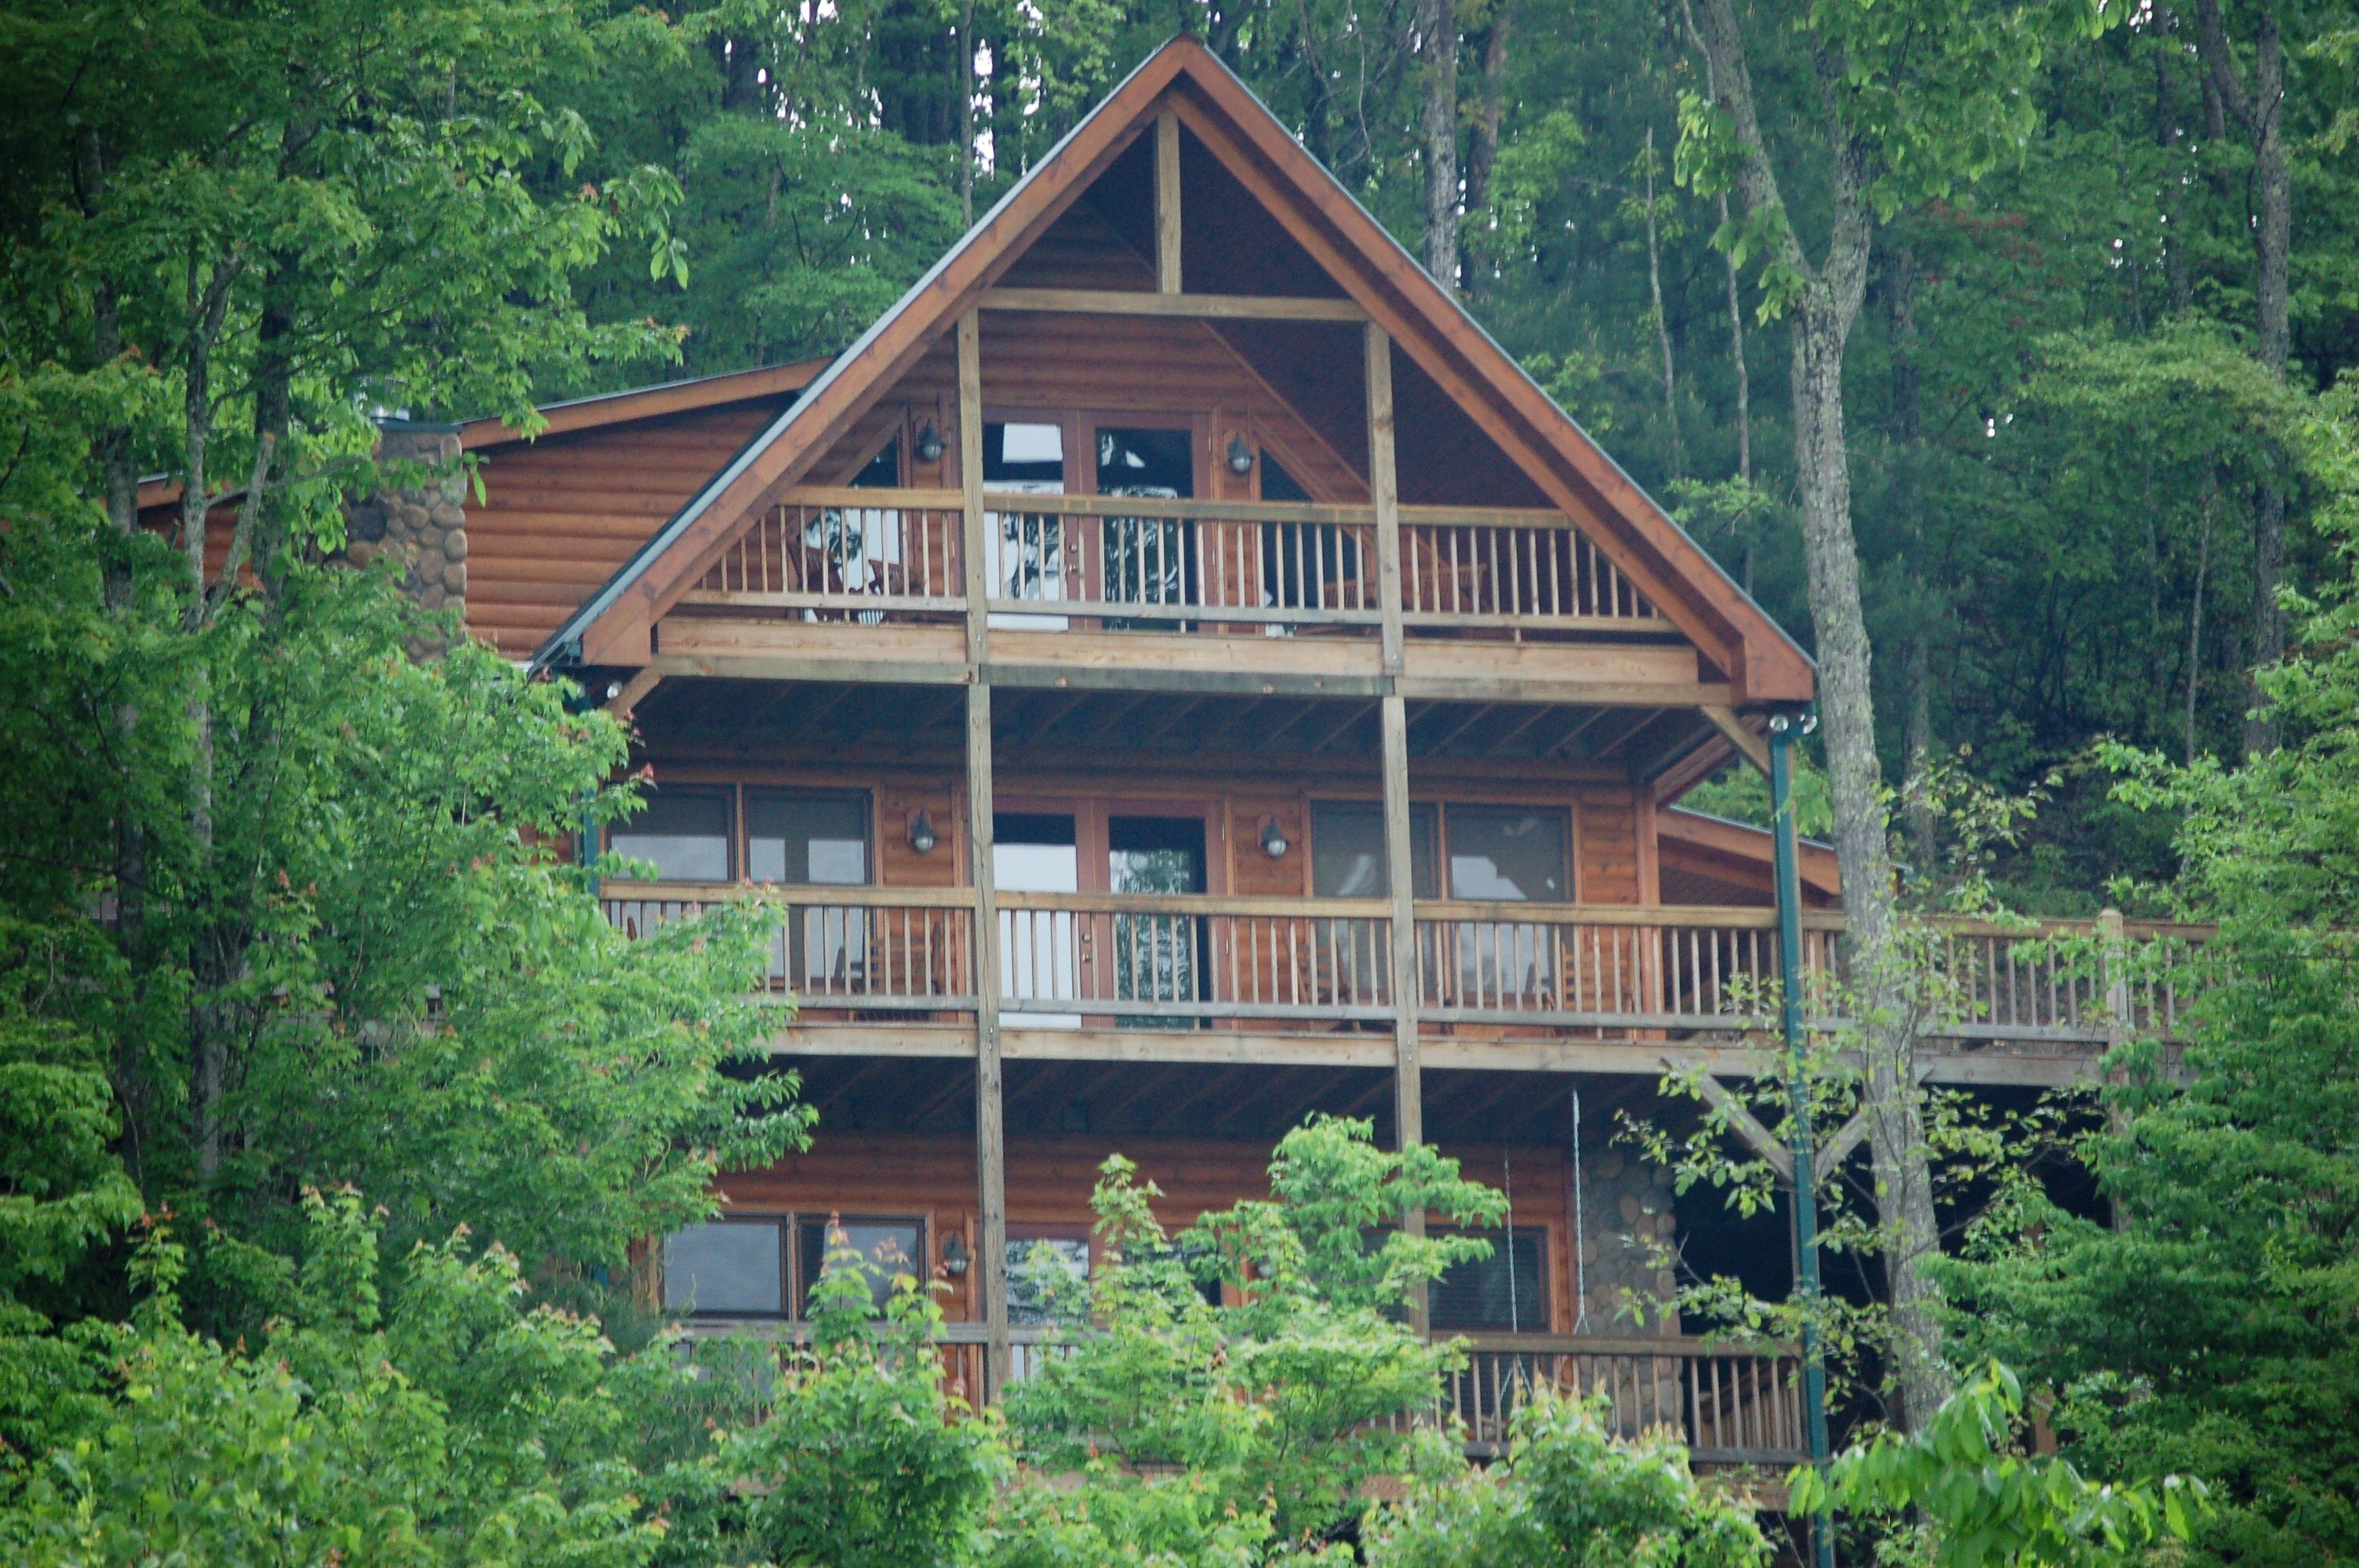 for pet mountas blue nc ga mountain virginia houses ridge friendly cabin rent carola lookg cabins getaway rentals mountains